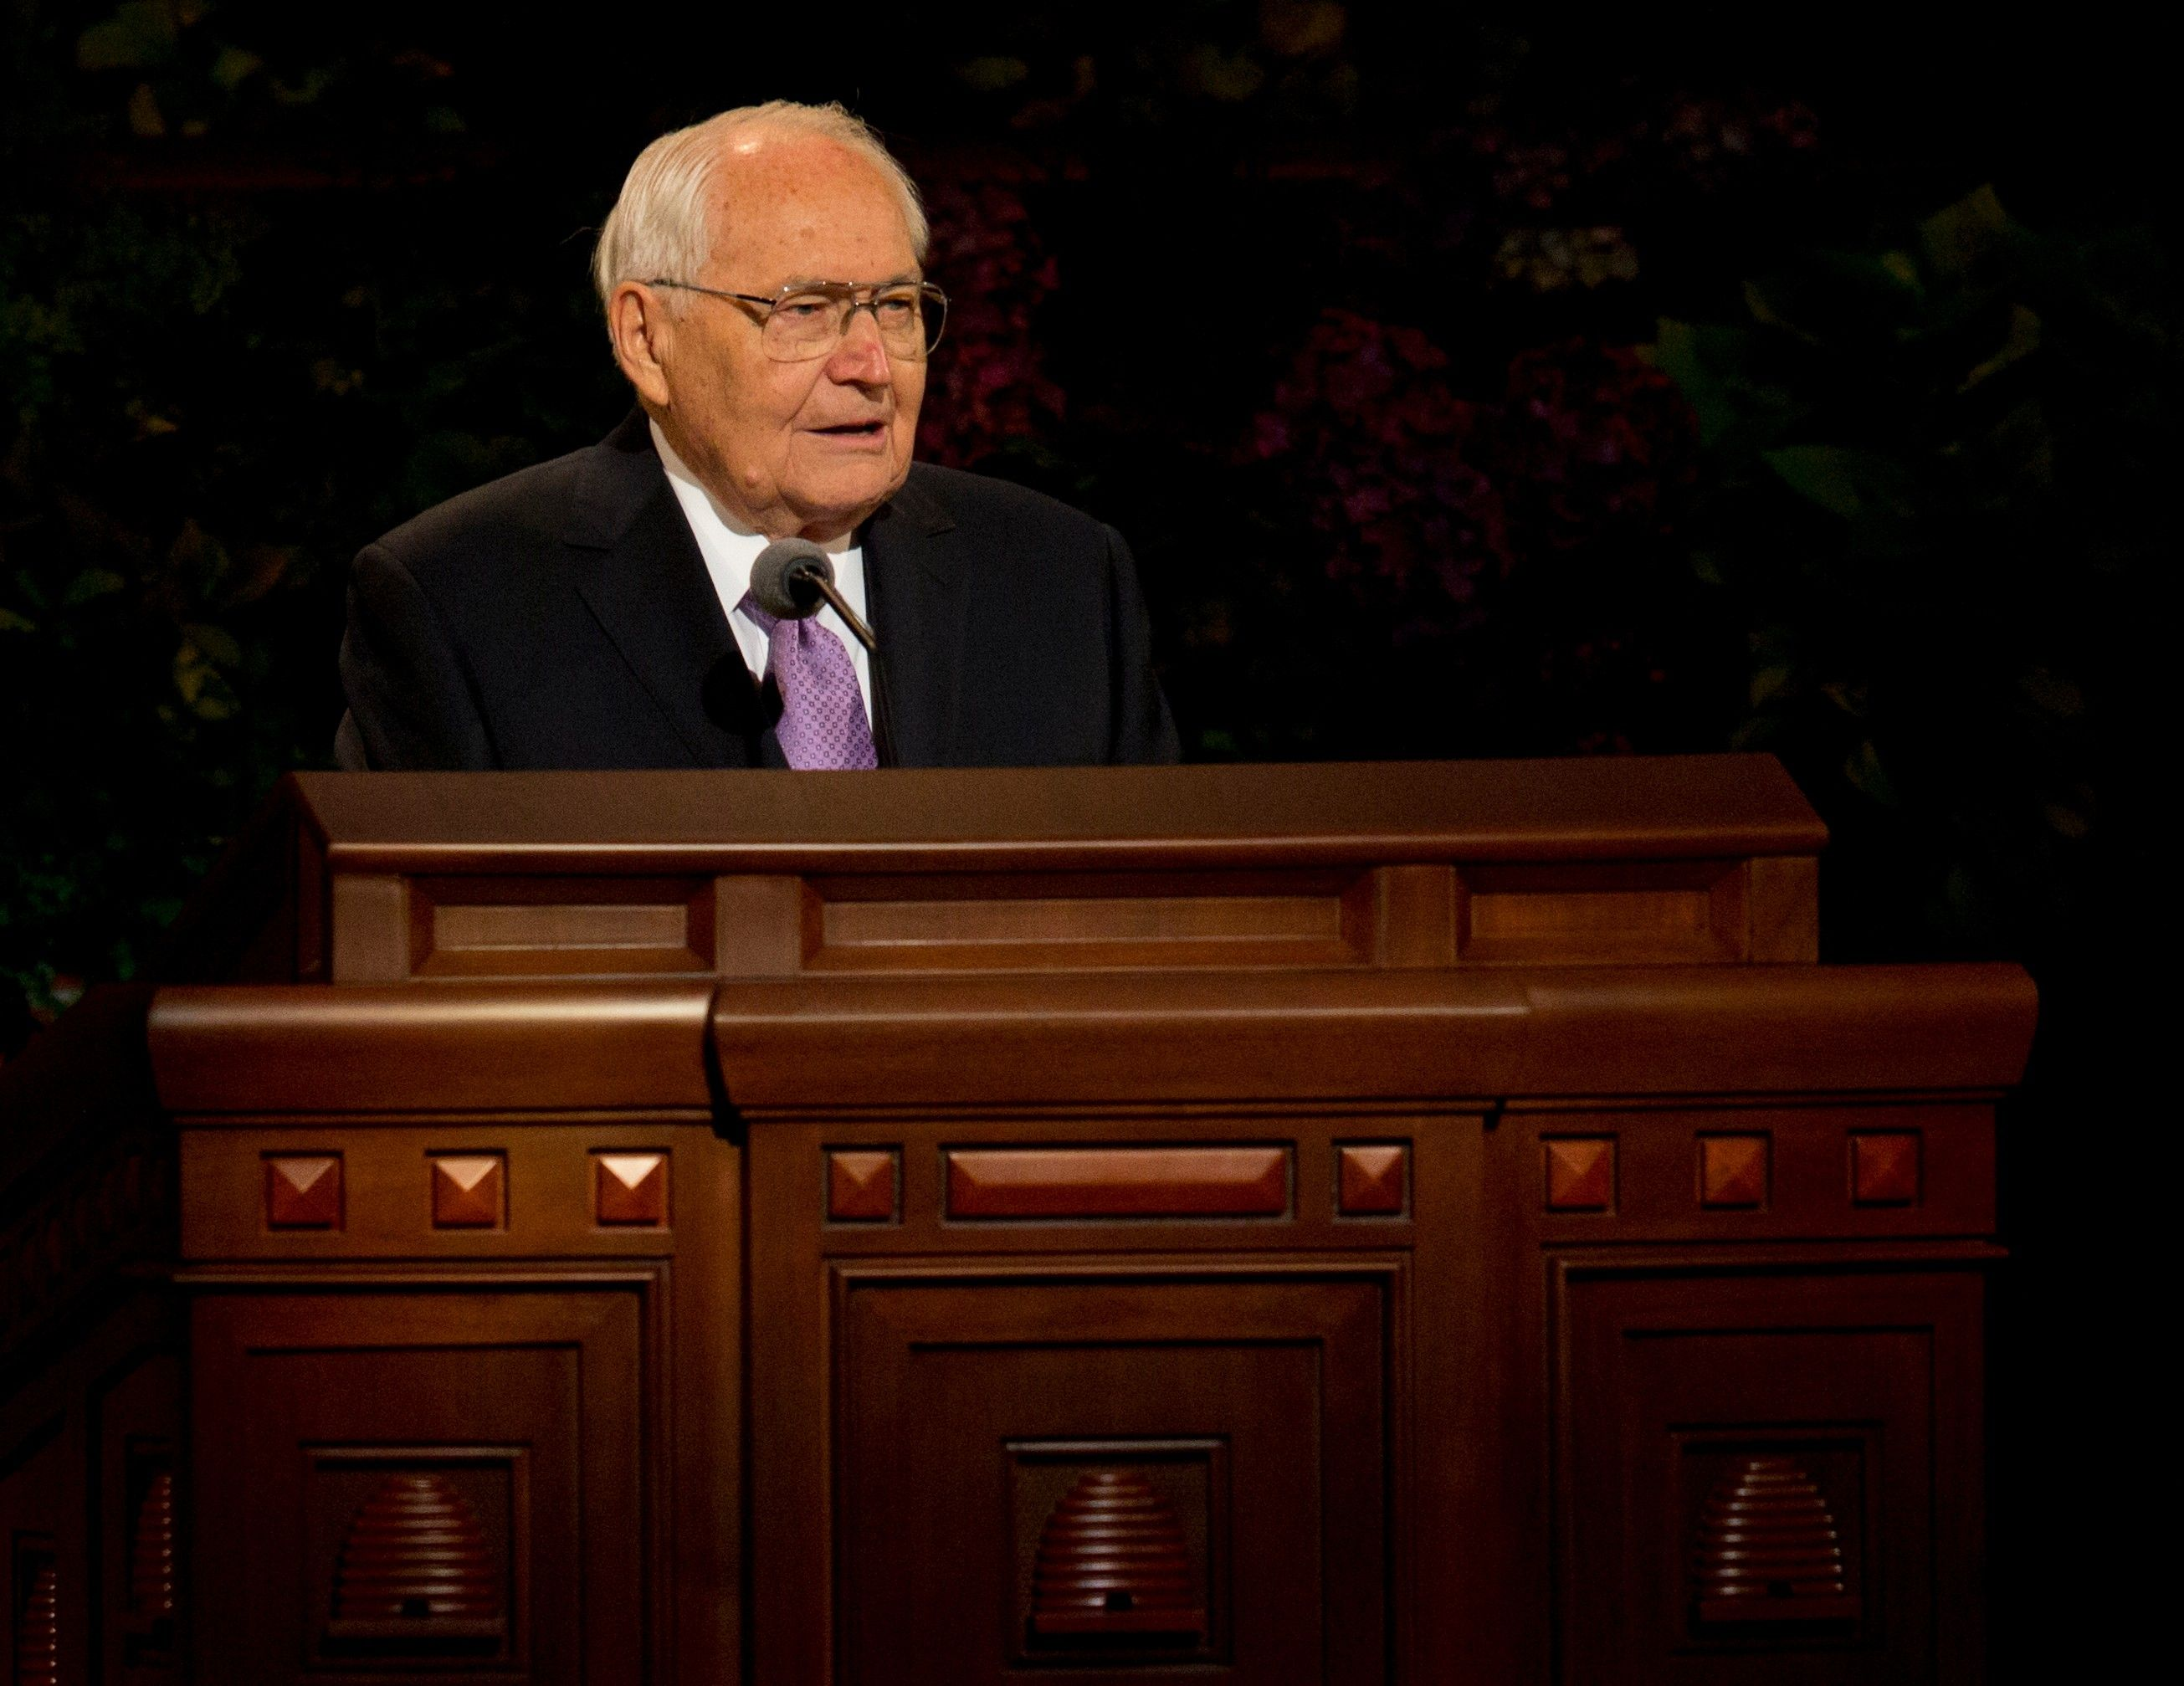 L. Tom Perry standing to speak to the congregation at general conference.